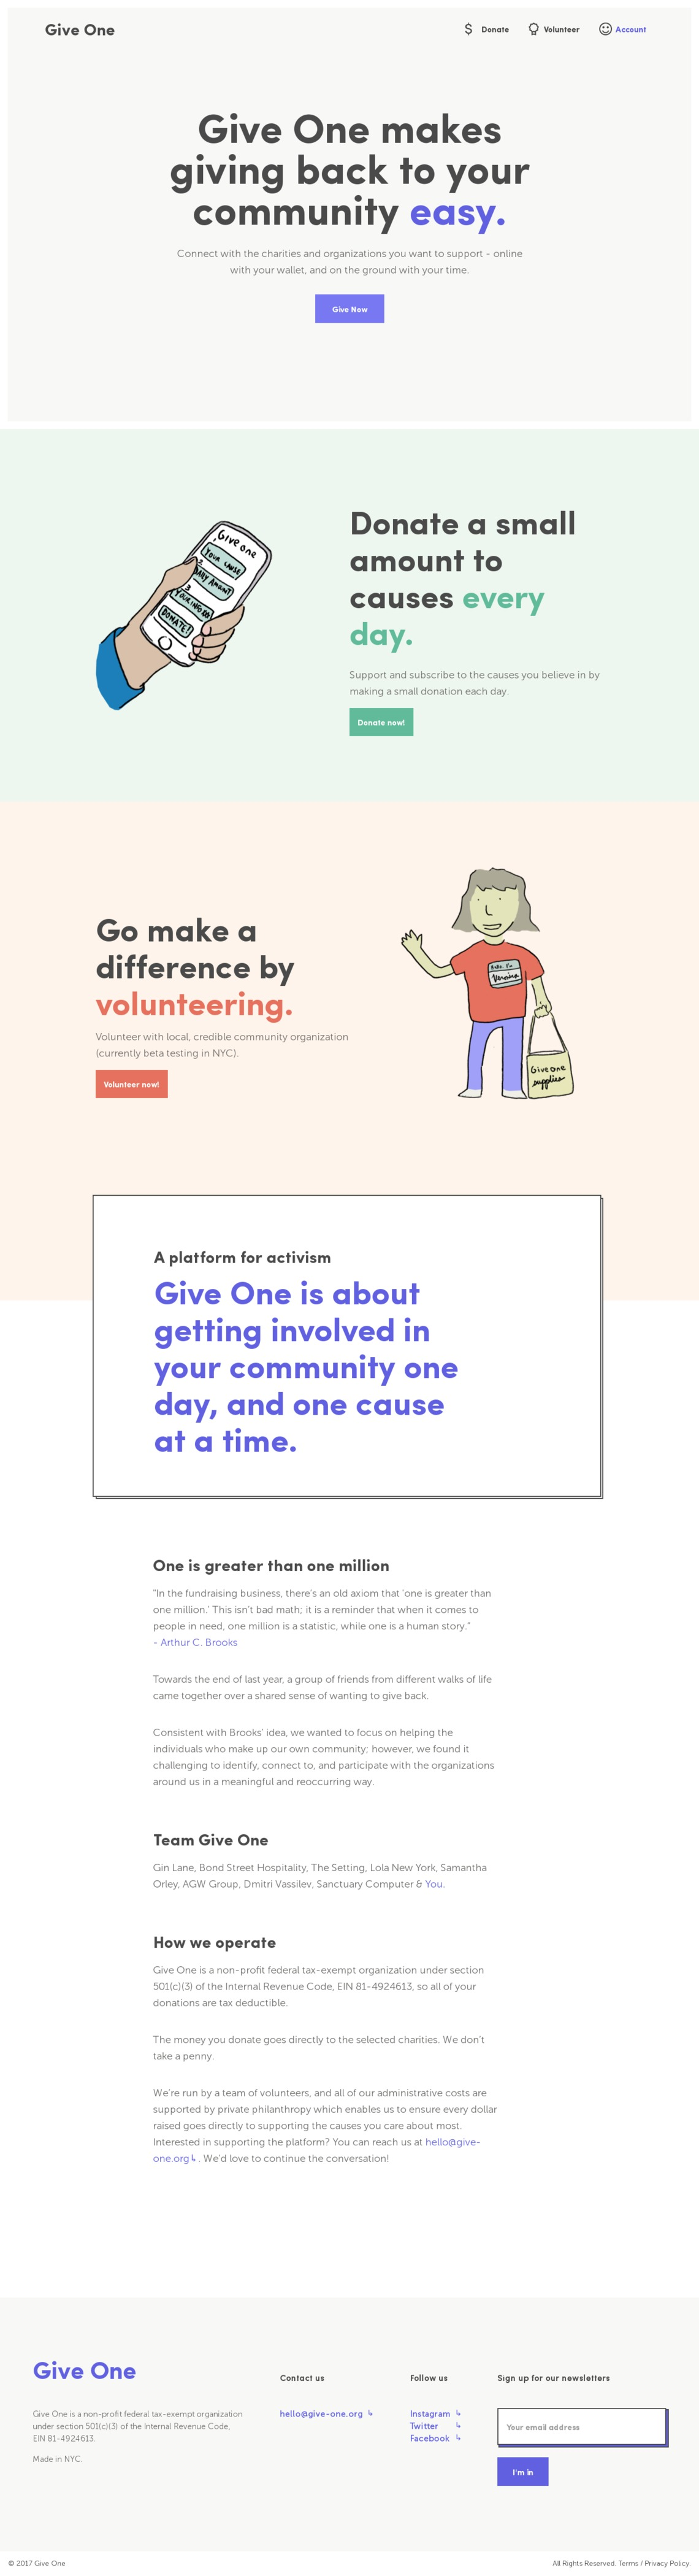 https://give-one.org/